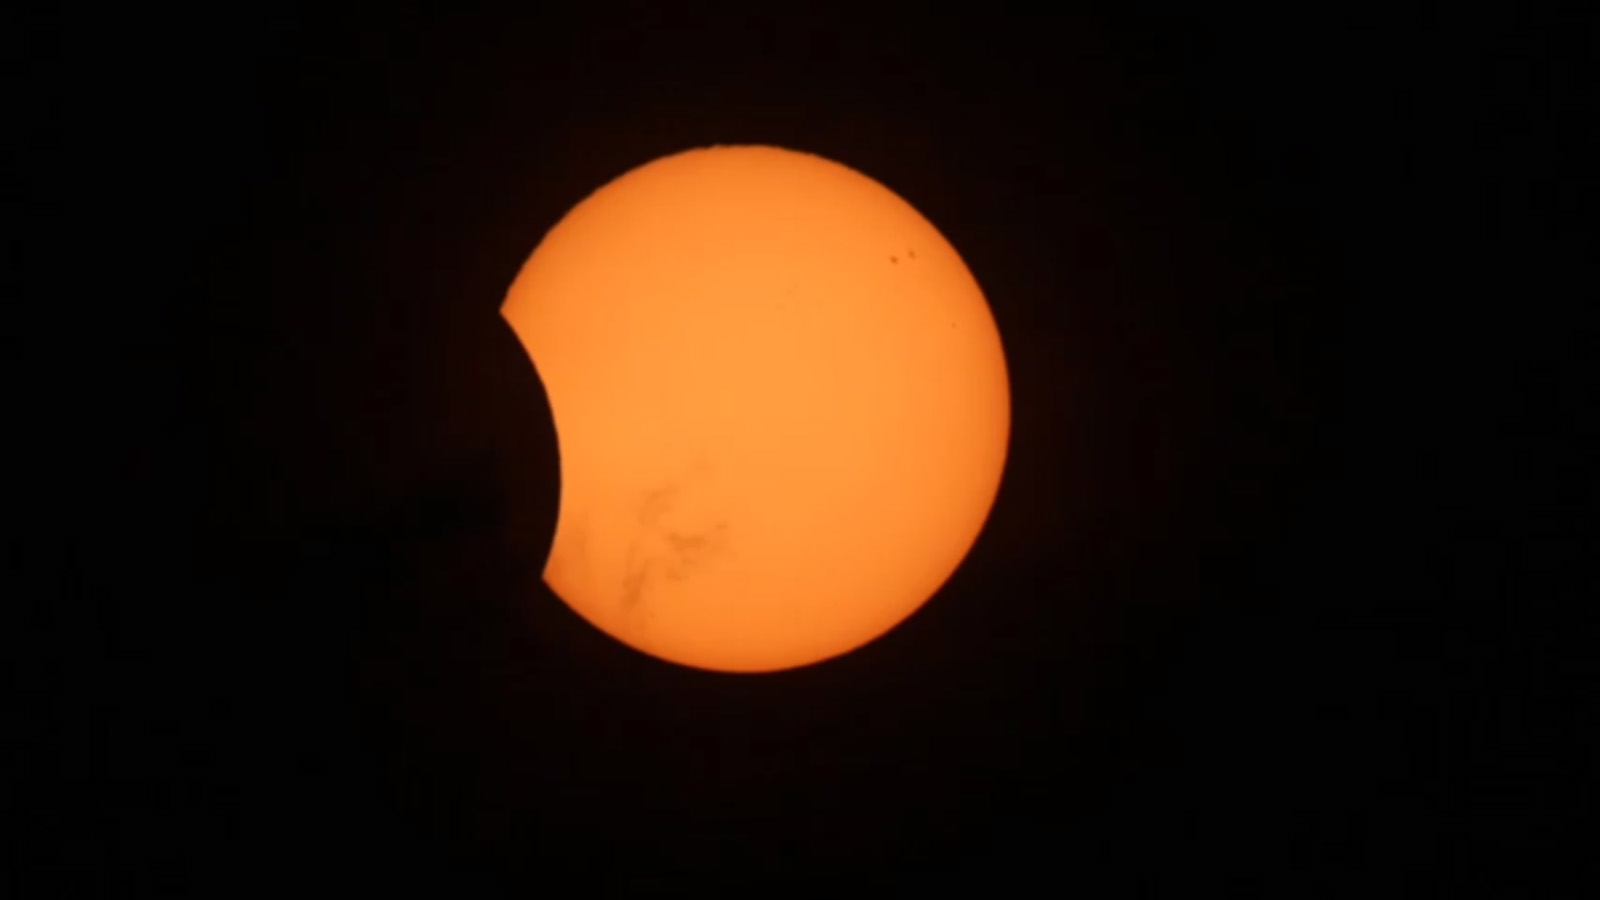 Partial Solar Eclipse View of April 29, 2014